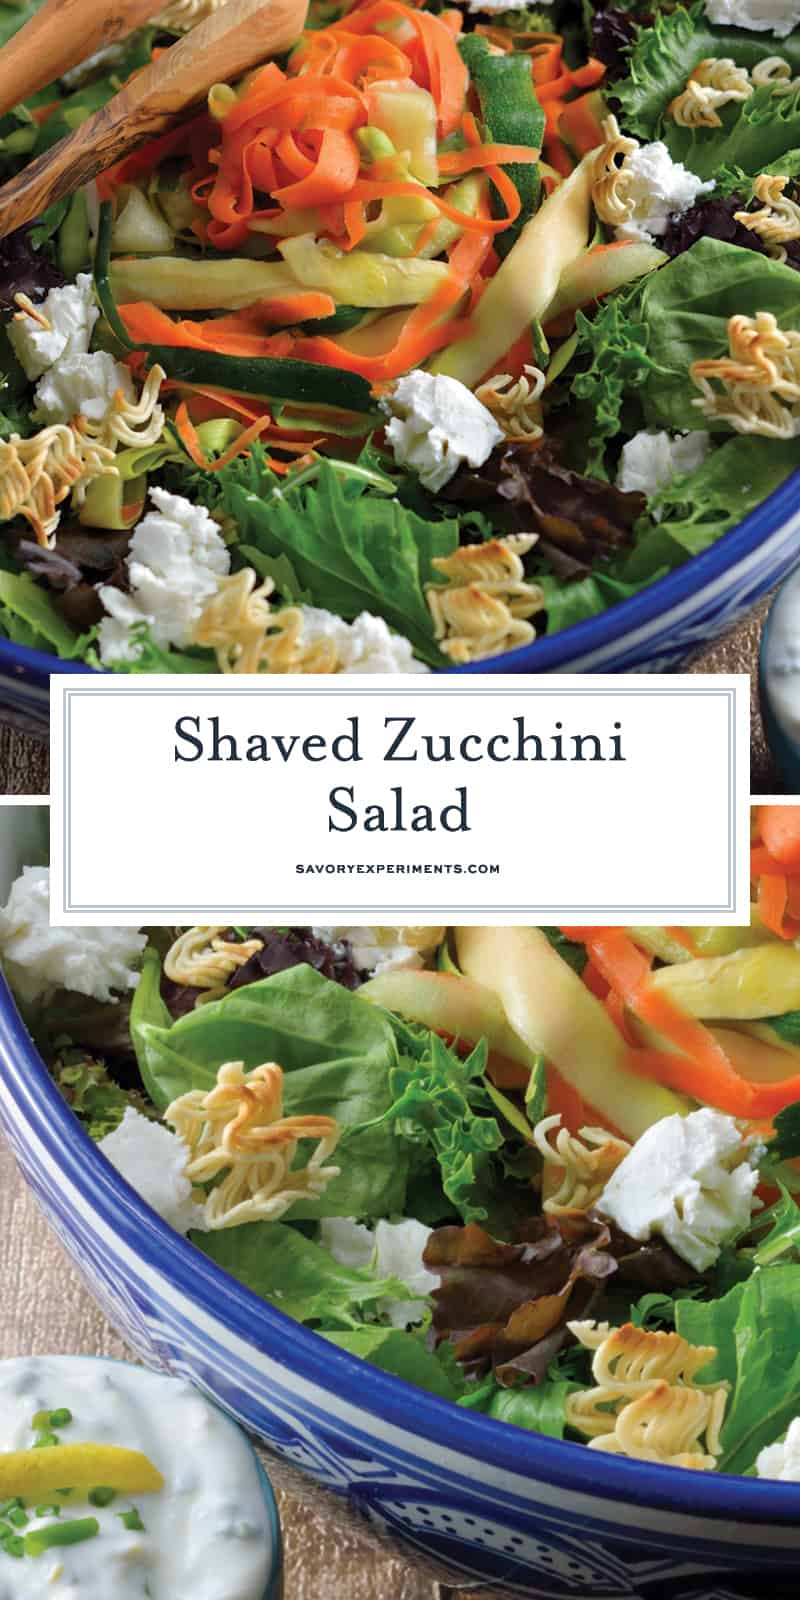 Shaved Zucchini Salad with Lemon-Chive Dressing - spring greens, soft goat cheese, toasted ramen croutons, marinated zucchini, squash and carrots with a yogurt-based lemon chive dressing. #zucchinisalad #homemadesaladdressing www.savoryexperiments.com